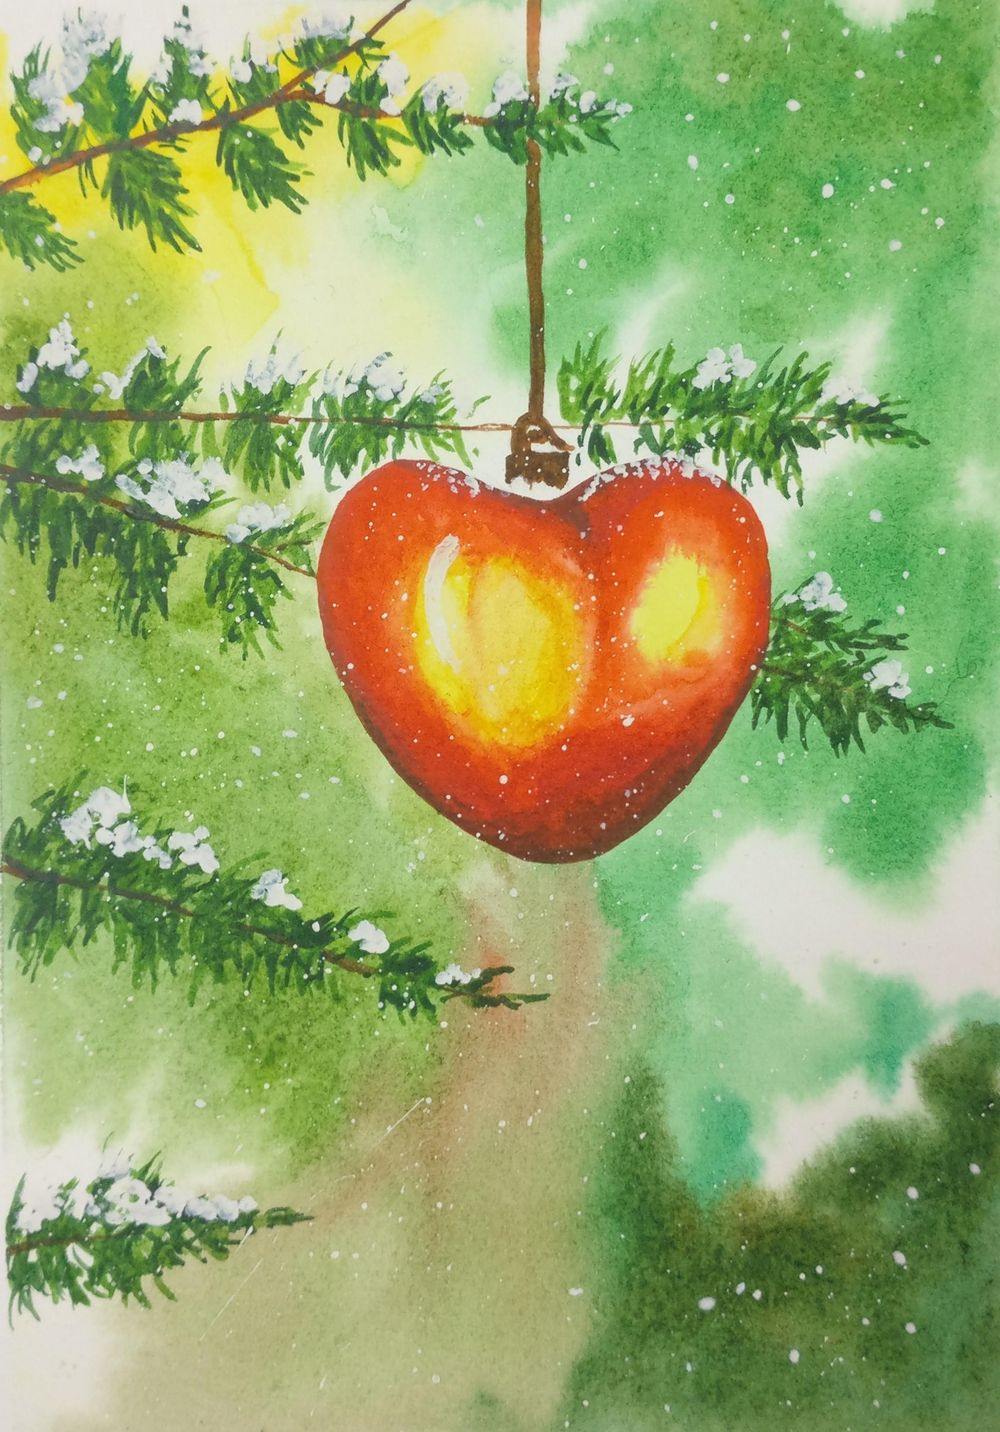 Christmas with watercolors - image 2 - student project